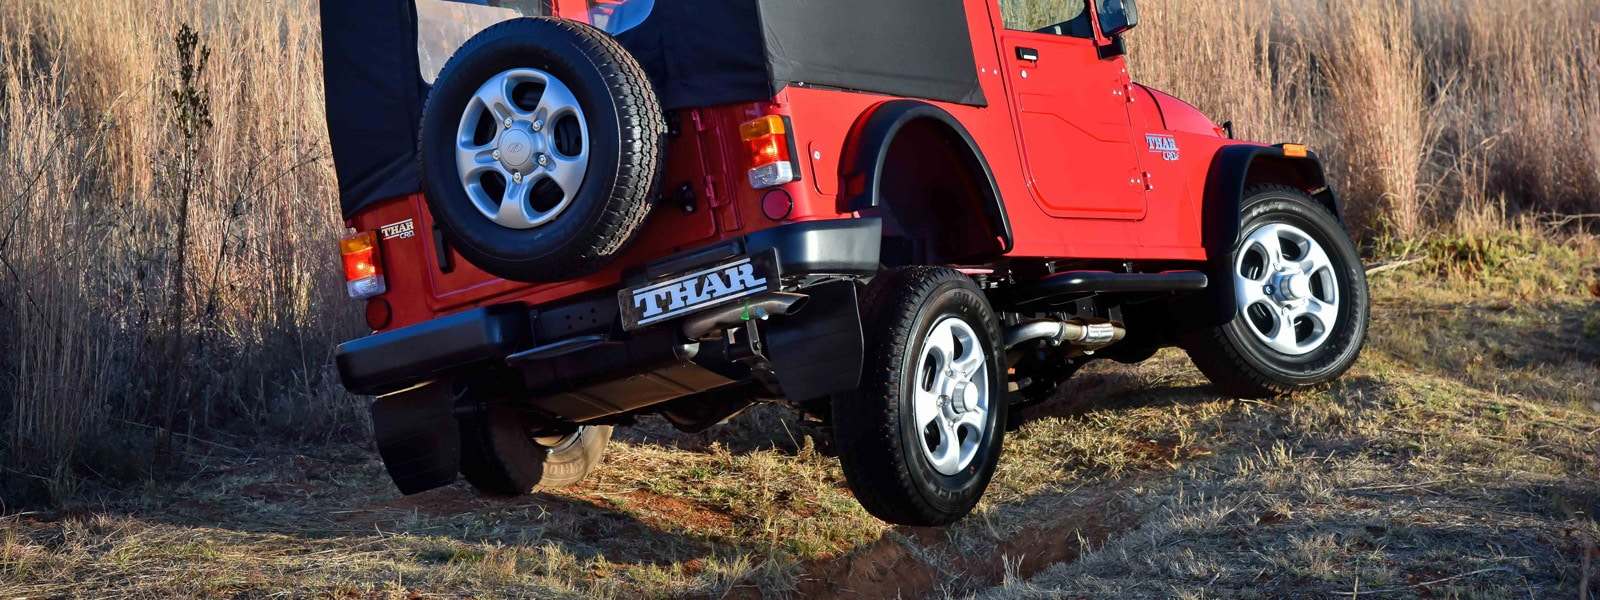 200 mm ground clearance